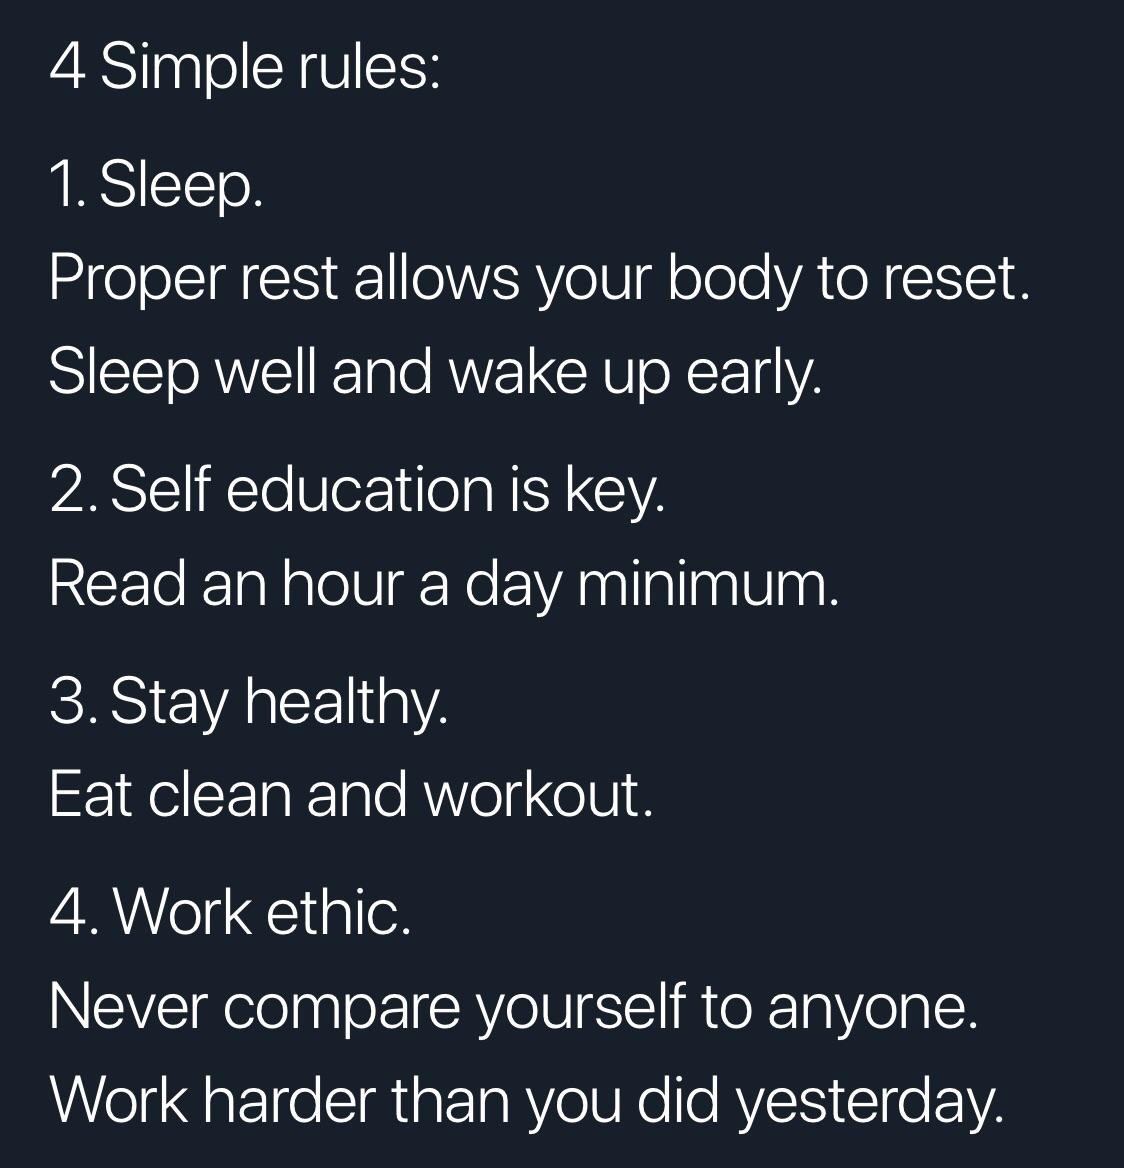 [image] 4 Simple rules